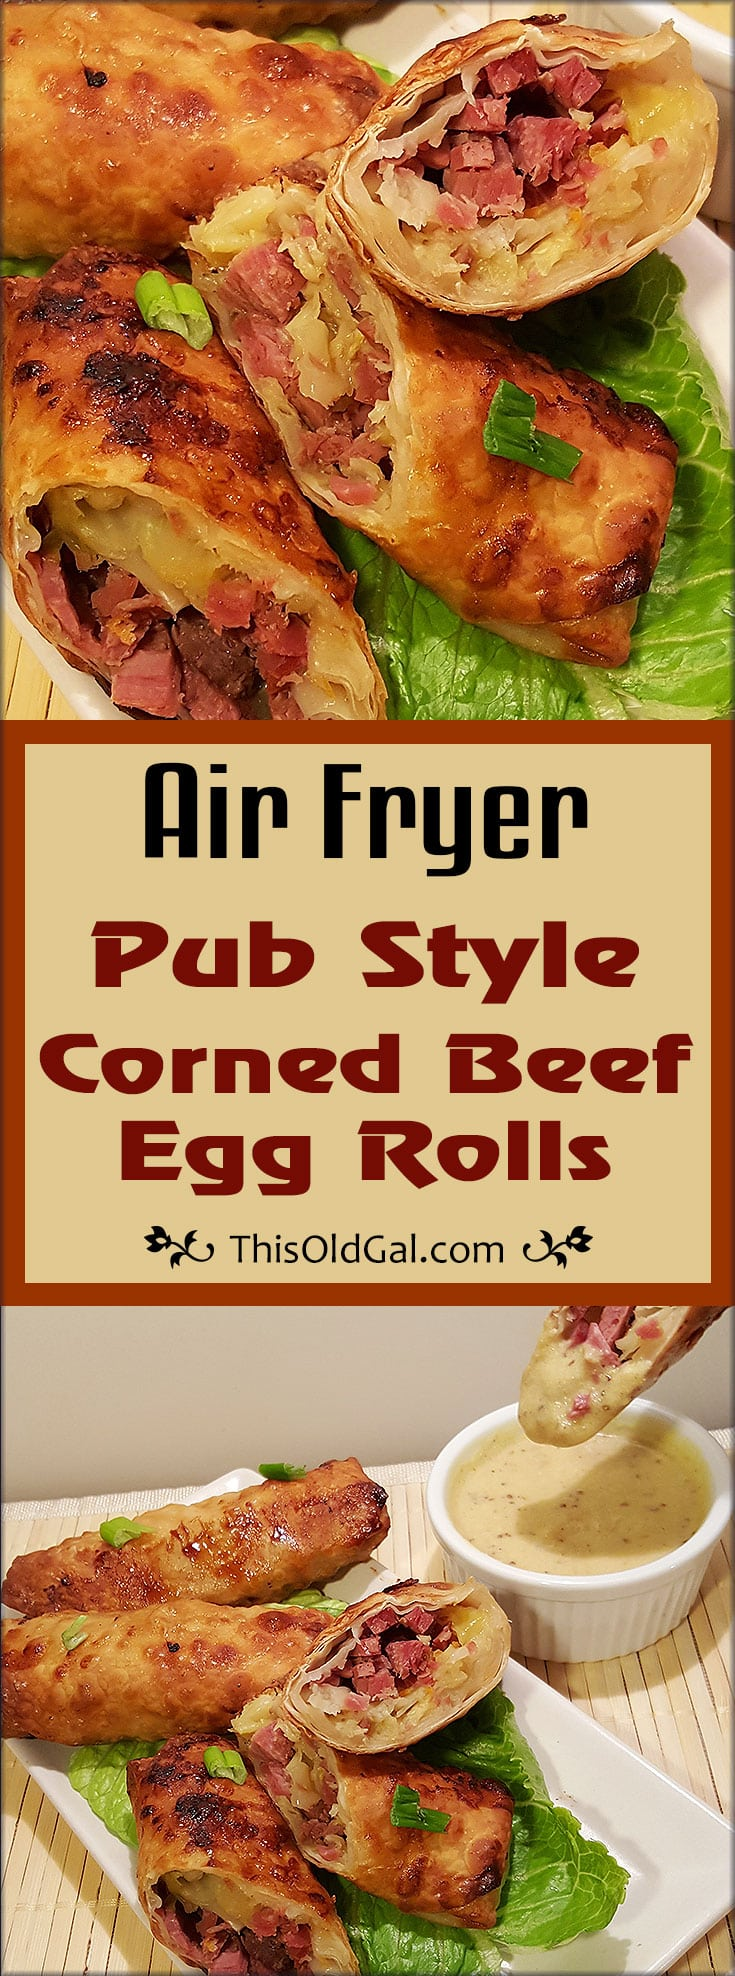 Air Fryer Pub Style Corned Beef Egg Rolls w/ Dipping Sauce